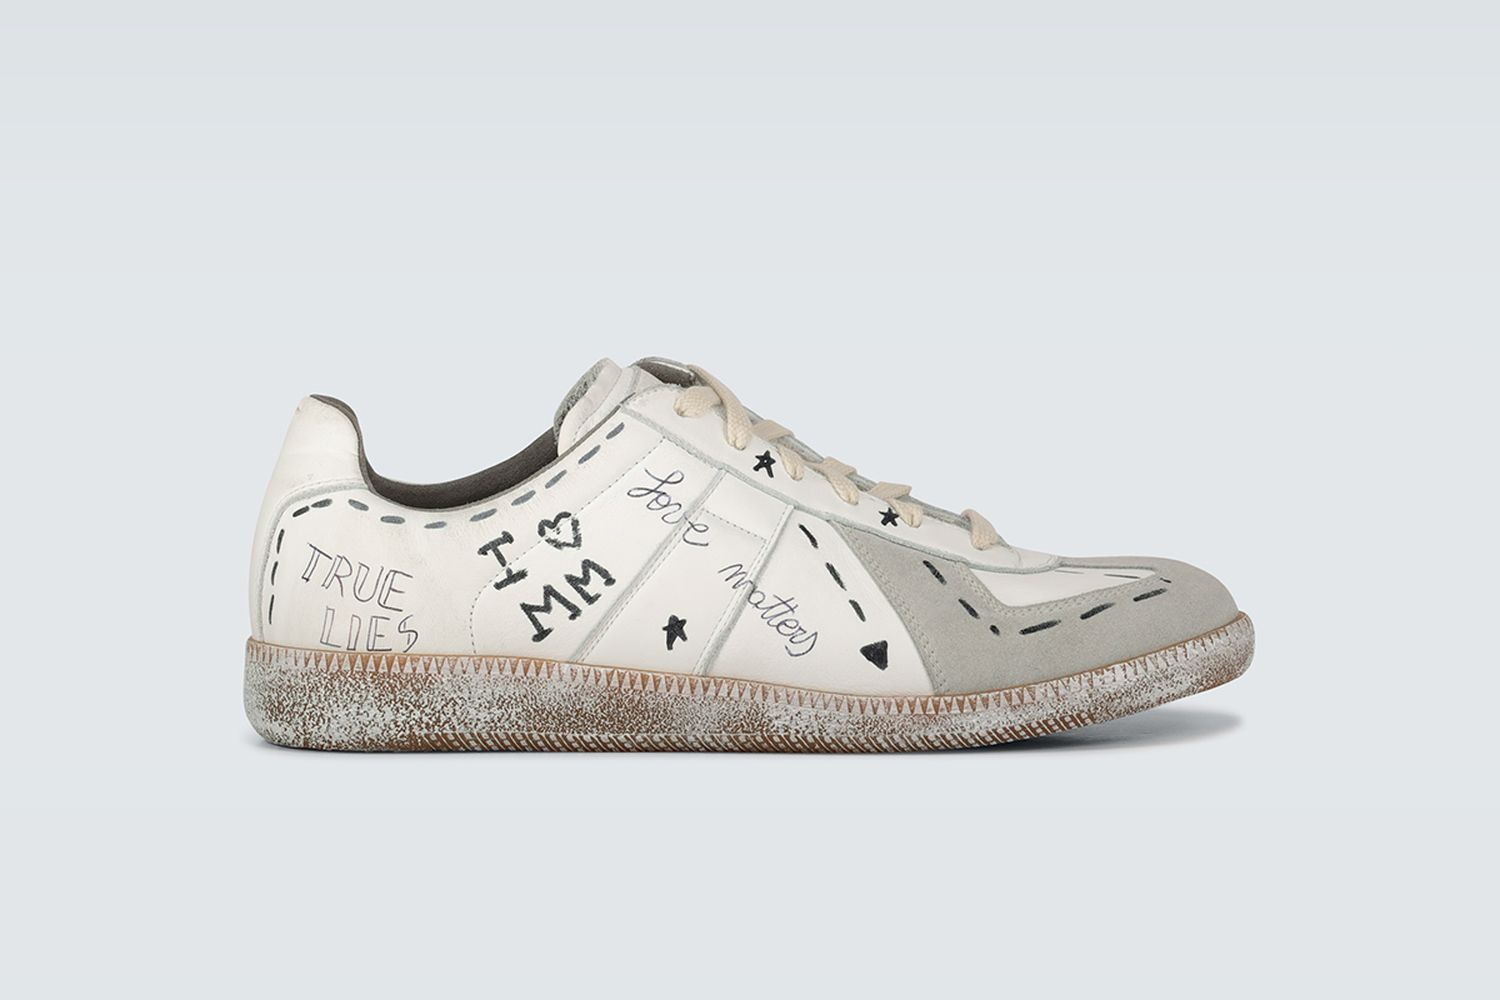 Exclusive to Mytheresa Vintage Graffiti Replica Sneakers